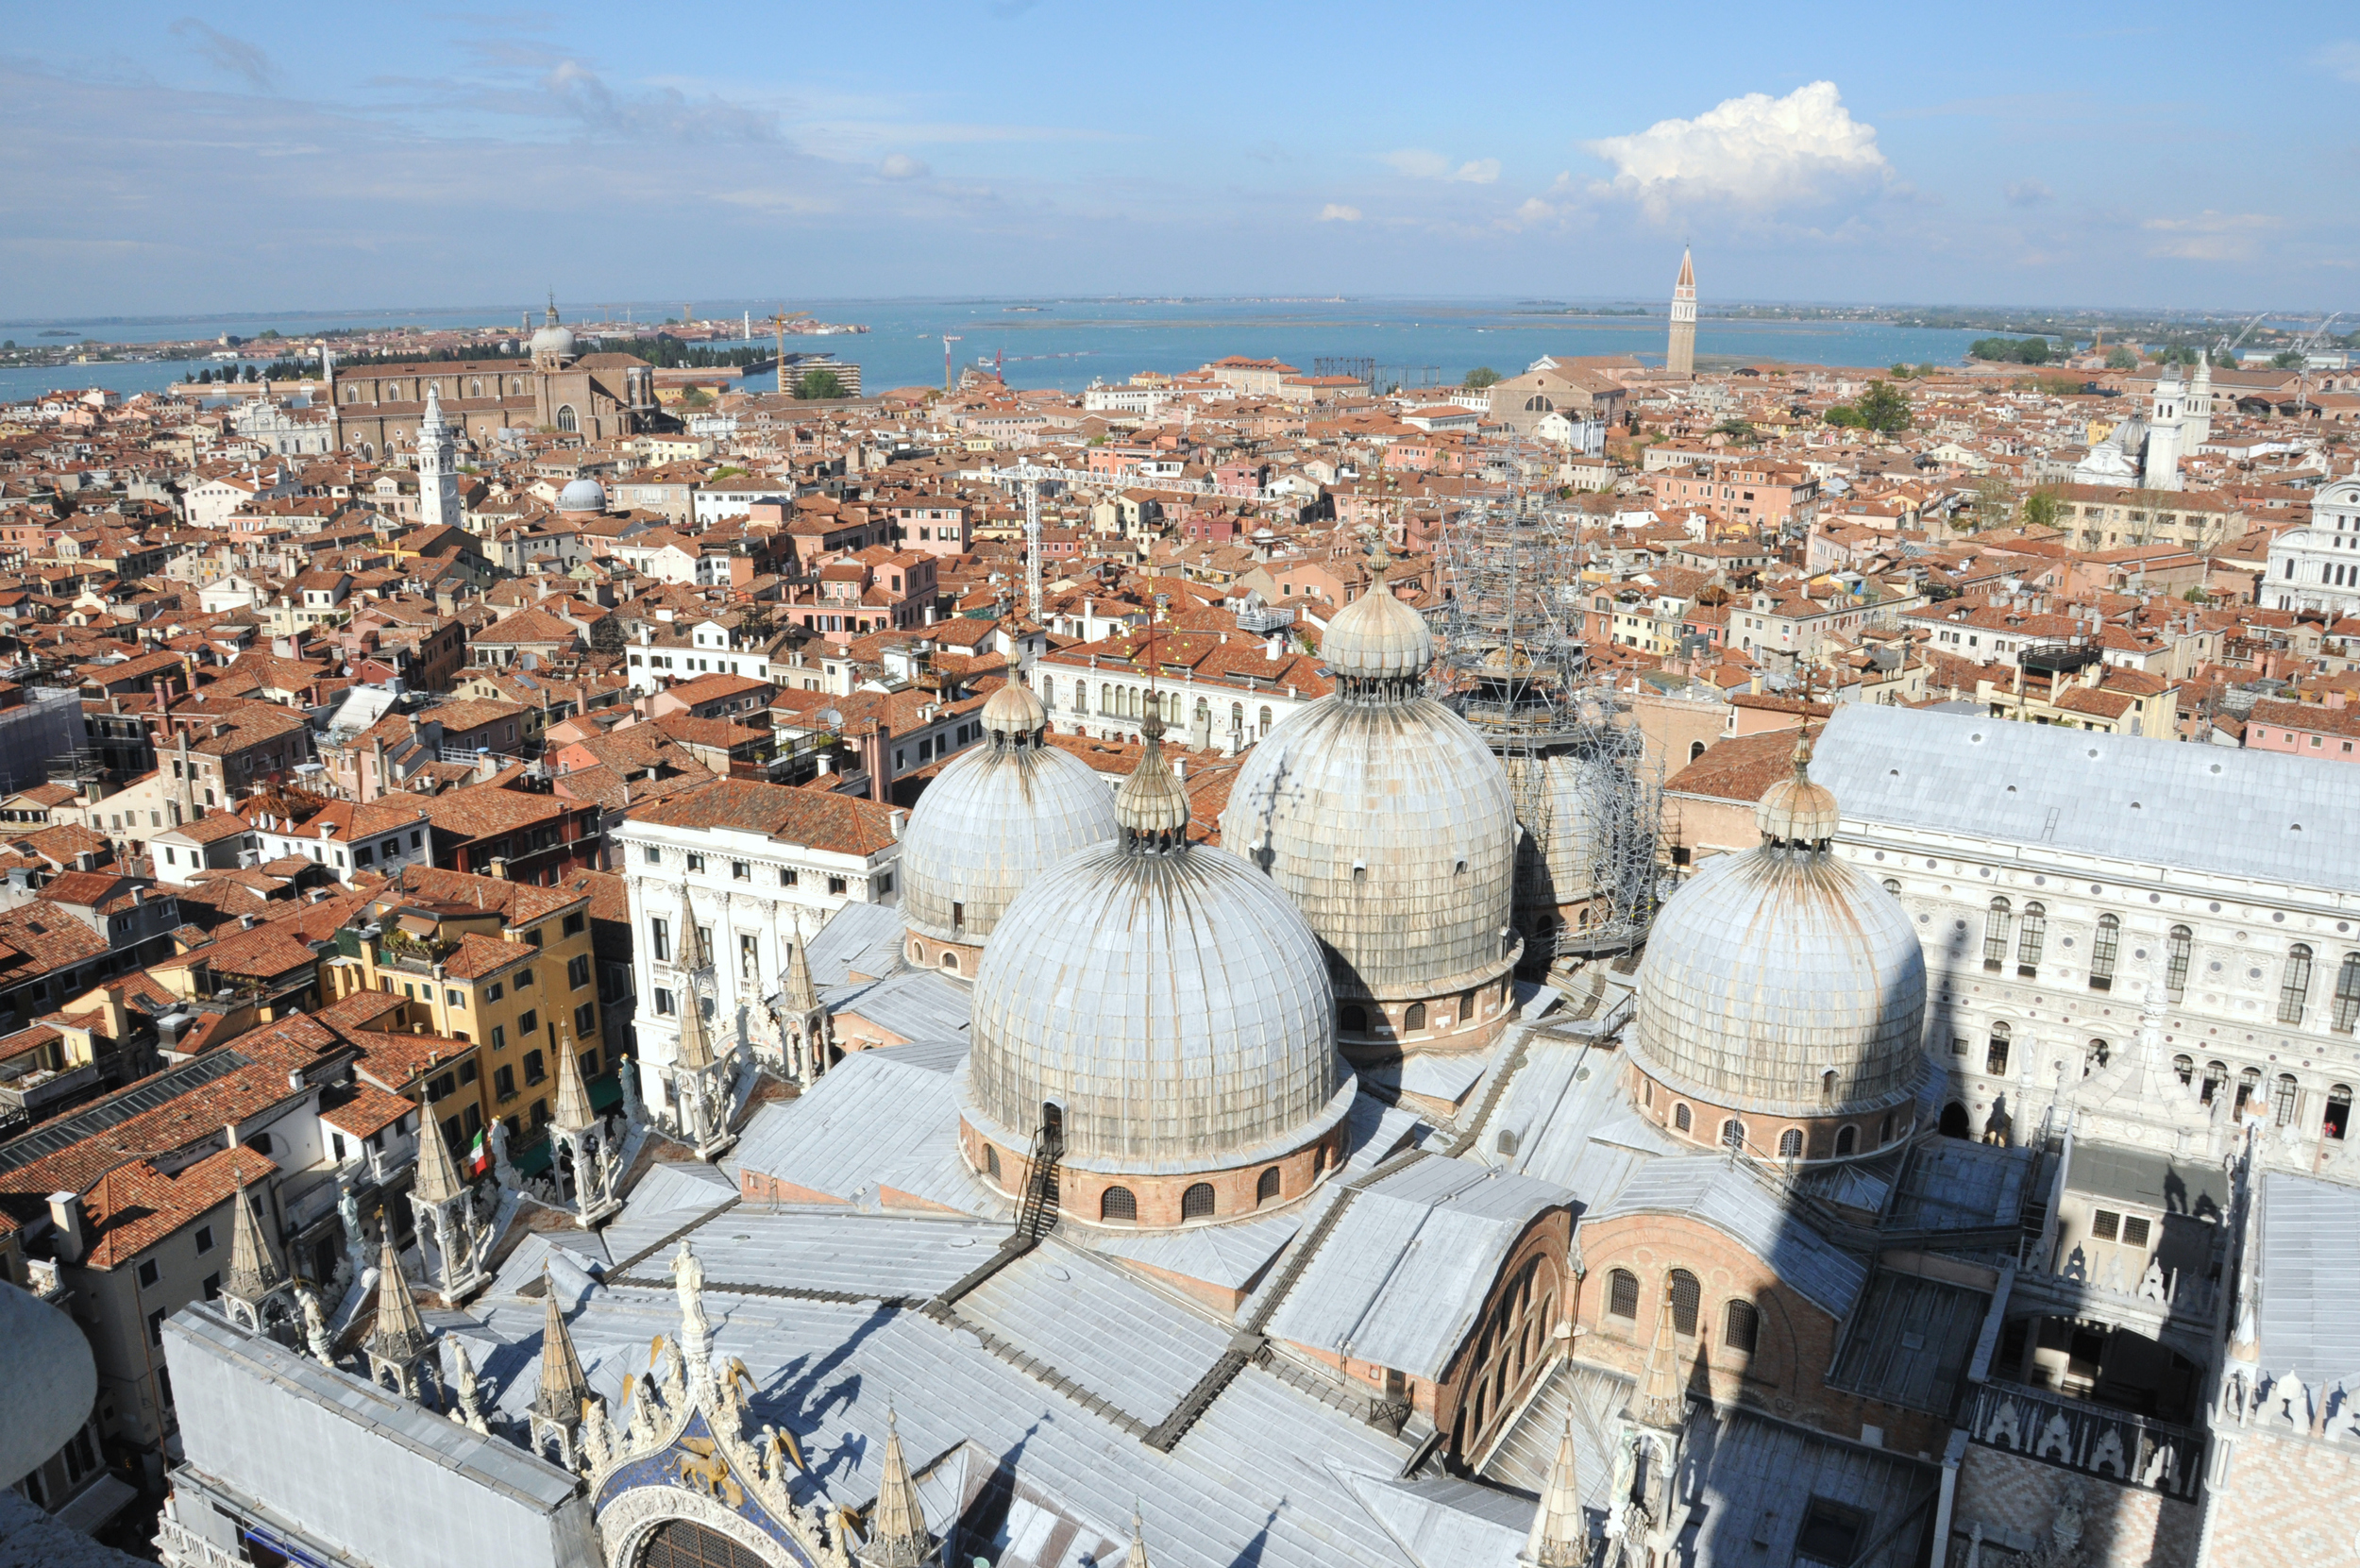 View of Venice from atop St Mark's Campanile (bell tower)